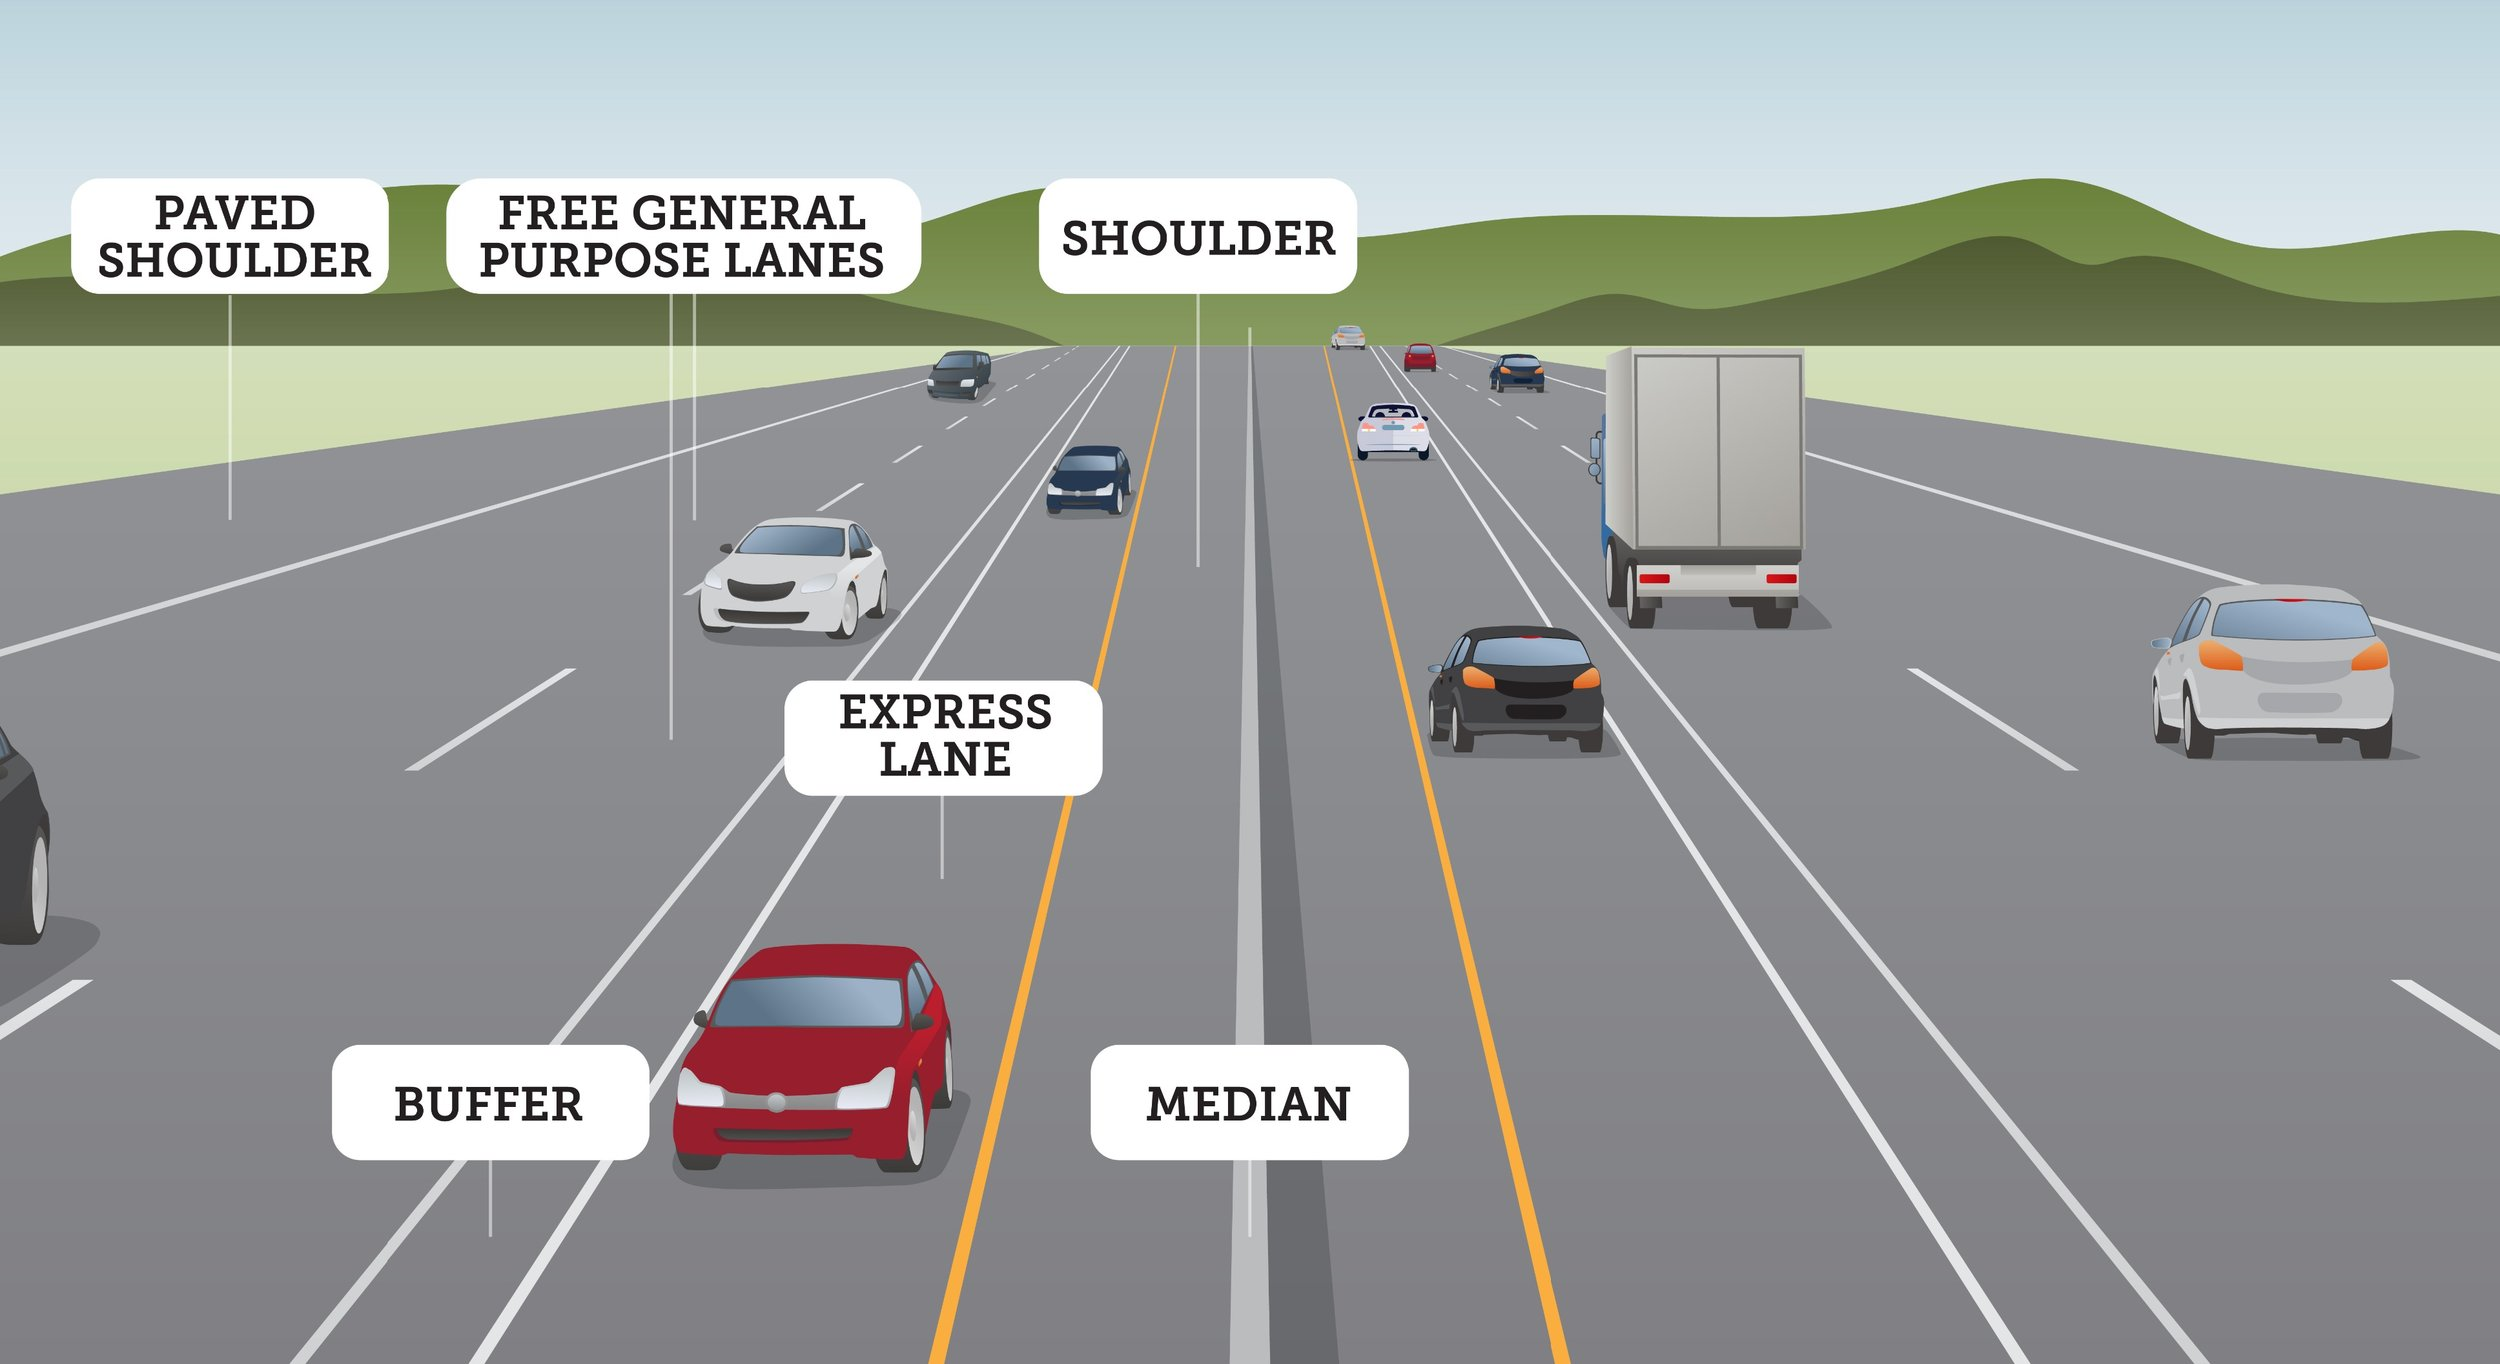 (Source: https://www.codot.gov/projects/i-25-south-monument-castle-rock-ea)